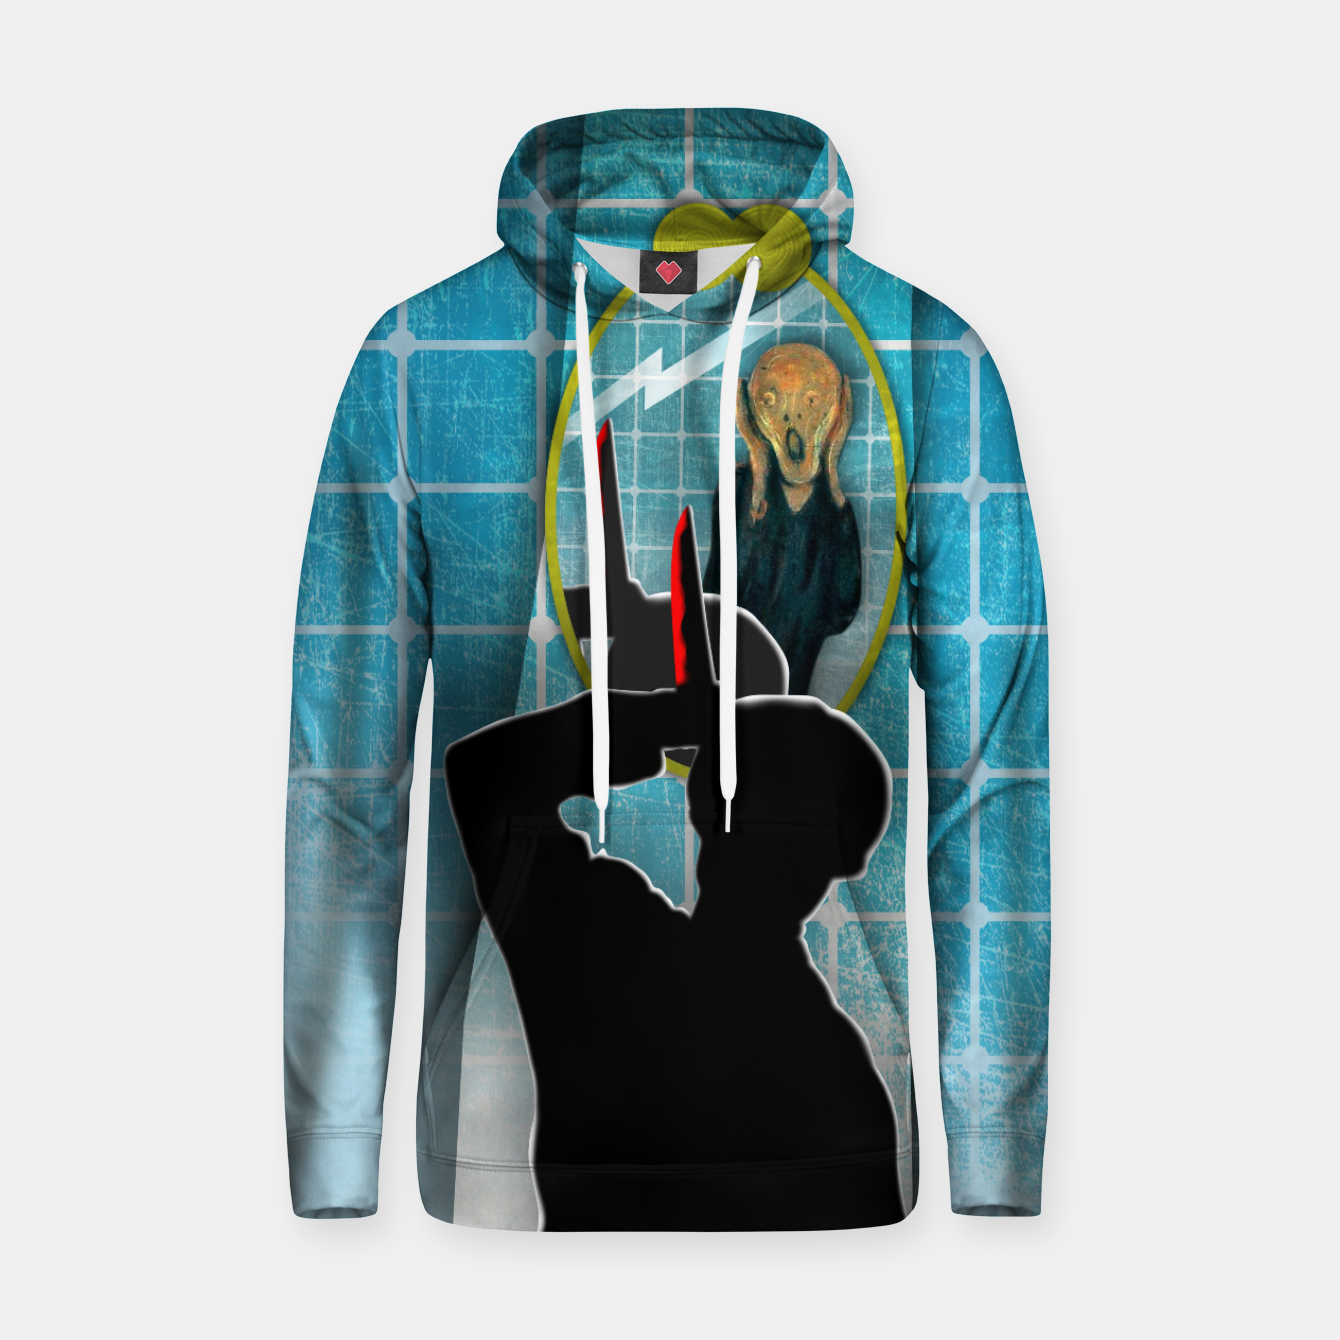 Imagen de PSICOSIS with THE SCREAM Sudadera con capucha - Live Heroes